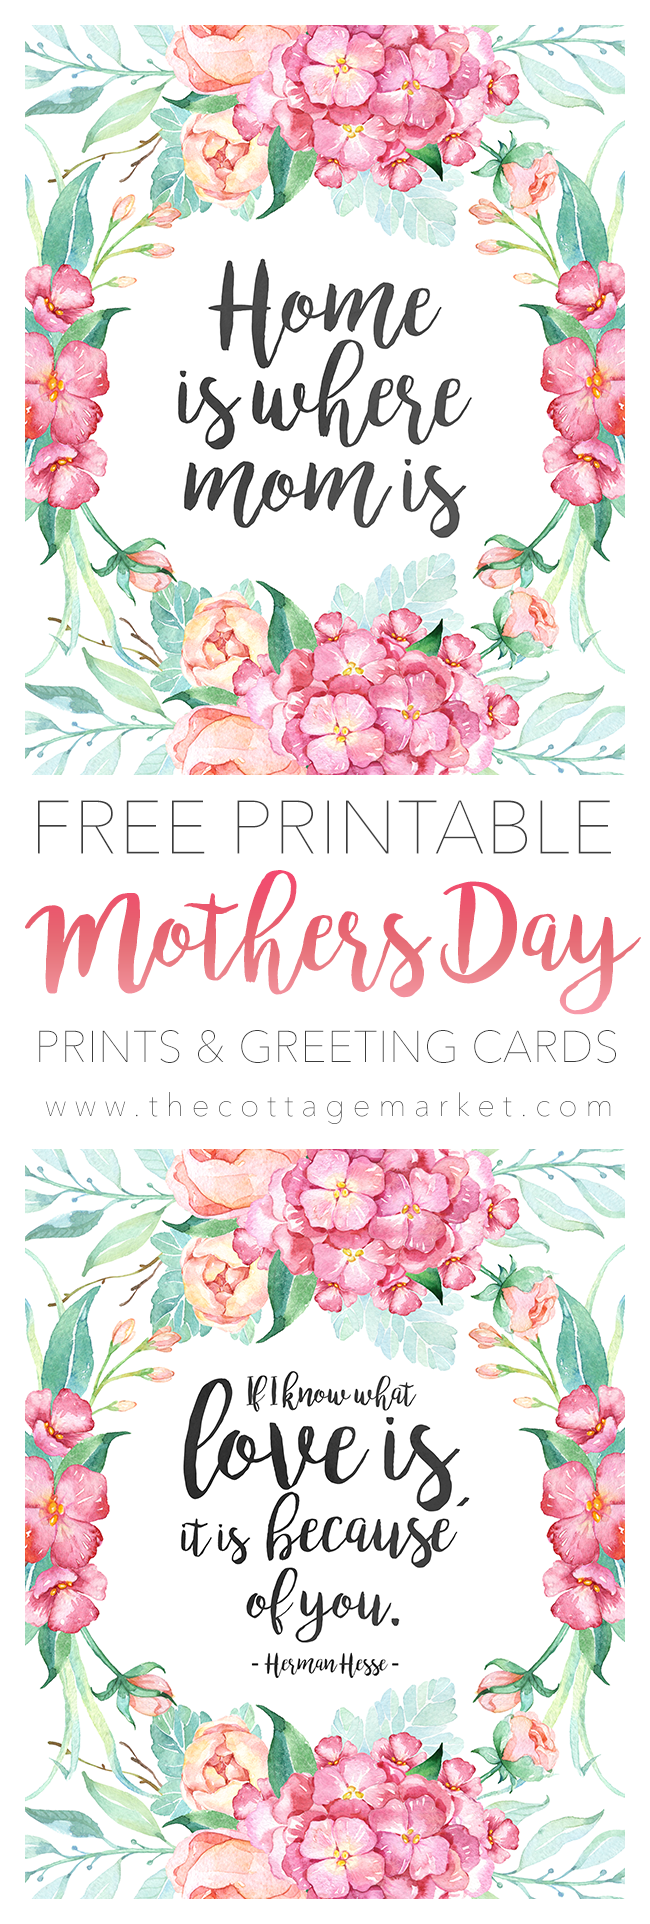 Free printable mothers day cards the cottage market tcm mothersday tower one m4hsunfo